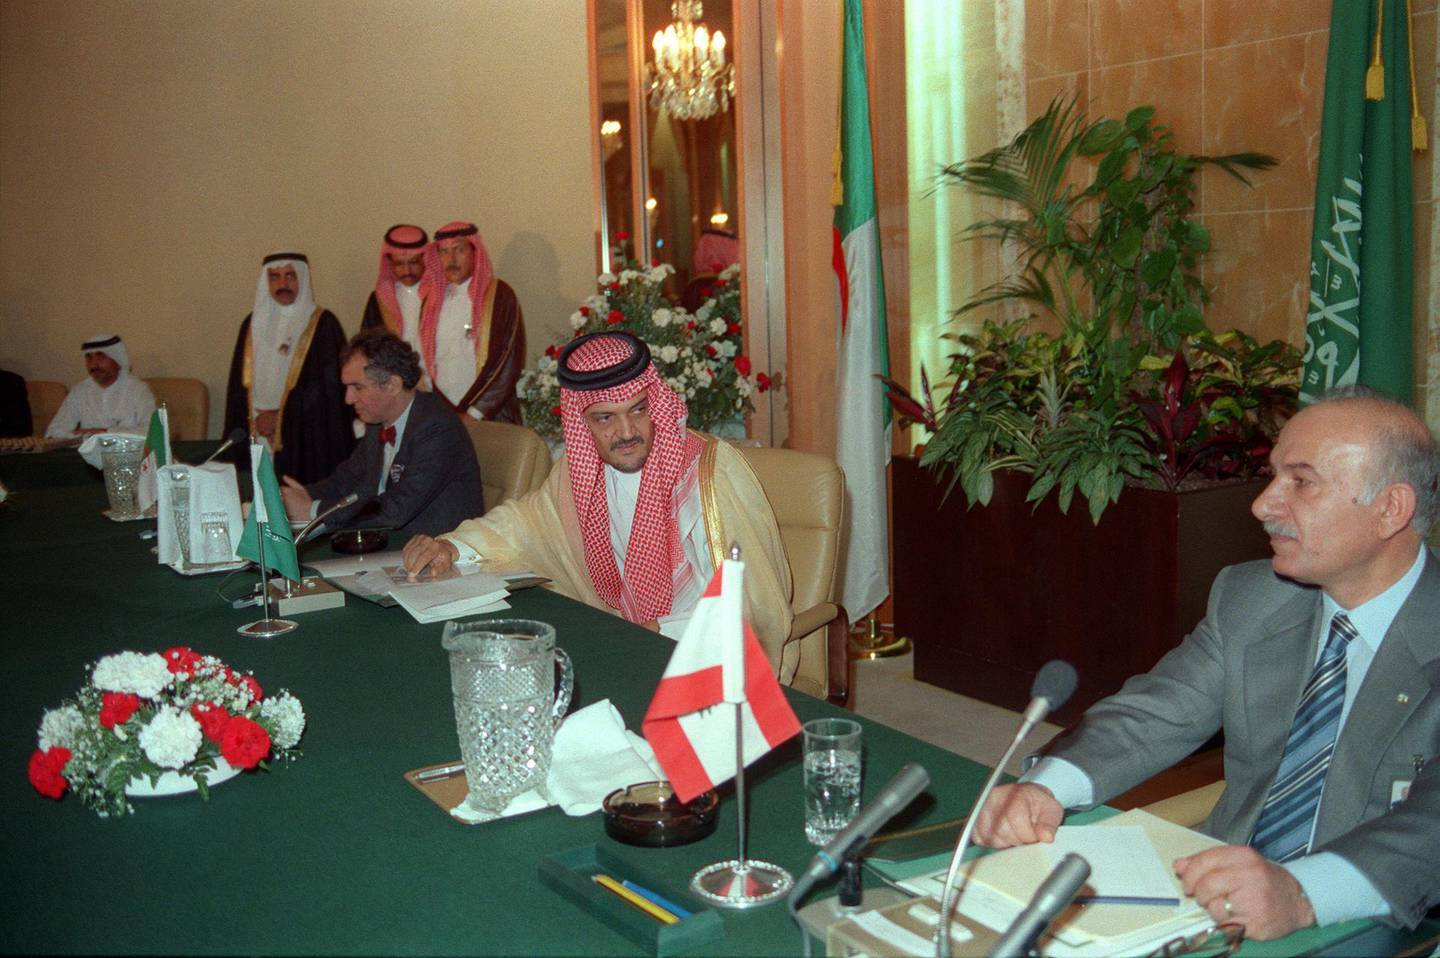 Sitting between Lebanese Parliament speaker Hussain al-Hussaini (R) and Algerian Foreign Minister Ahmad Ghassali (L), Saudi Arabian Foreign Minister Prince Saul al-Faysal (C) looks on 30 September 1989 in Taif after the members of Lebanese National Assembly started to discuss the charter of national reconciliation. The session was attended by 31 Christian and 31 Muslim MP's. At a further meeting 22 October 1989, the charter of national reconciliation (the Taif Agreement) was endorsed by 58 of the 62 deputies attending the session. The Taif agreement provided for the transfer of executive power from the presidency to a cabinet, with portfolios divided equally among Christian and Muslim ministers. (Photo by NABIL ISMAIL / AFP)